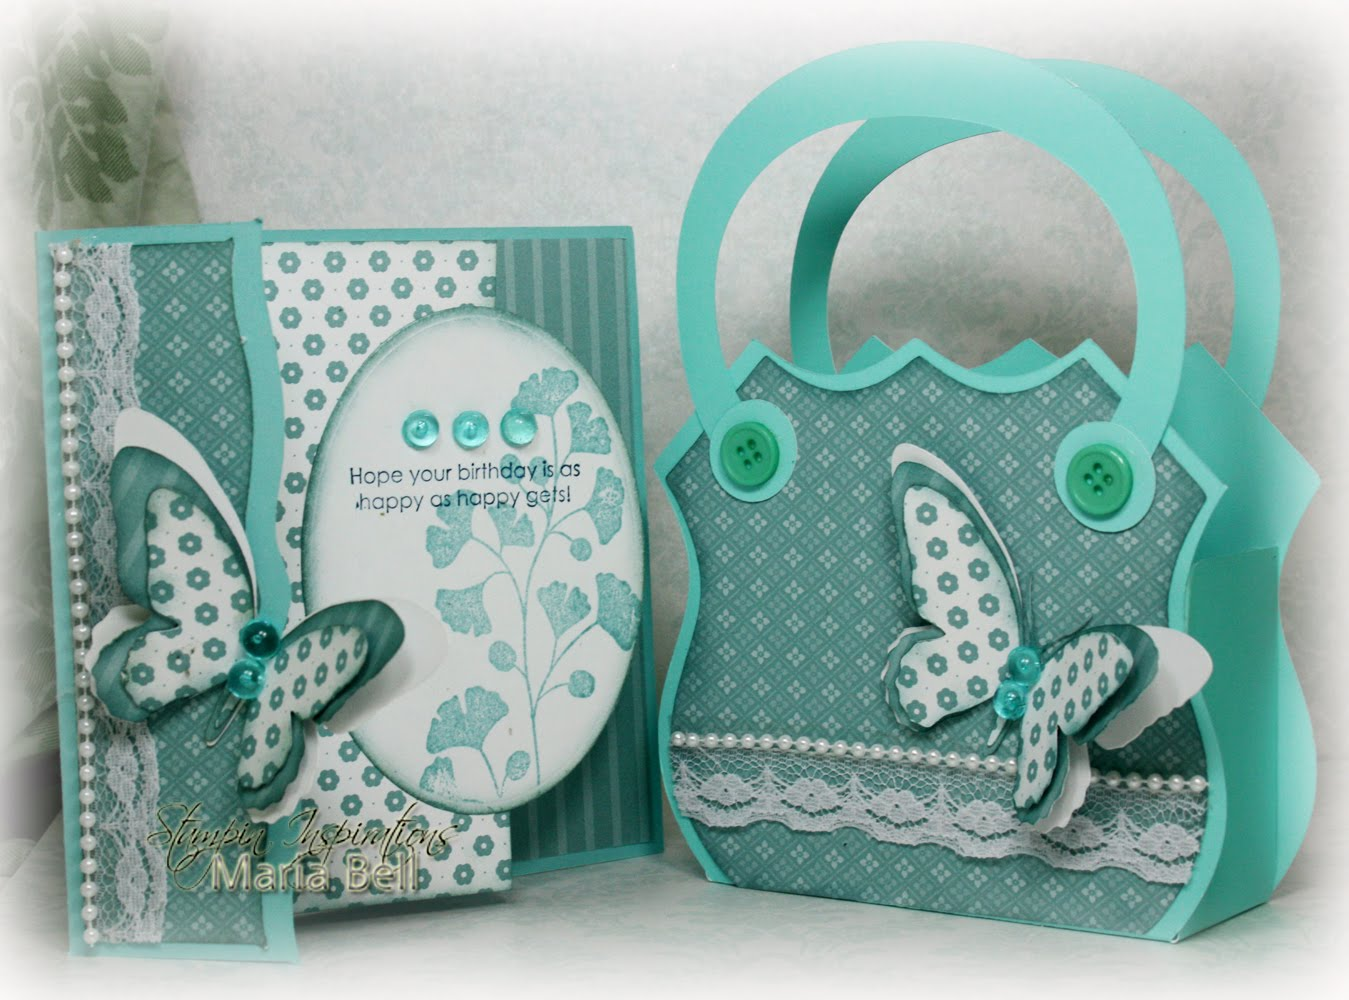 Inspired and Unscripted: Gift Sets - Decorative Edge Card and Purse ...